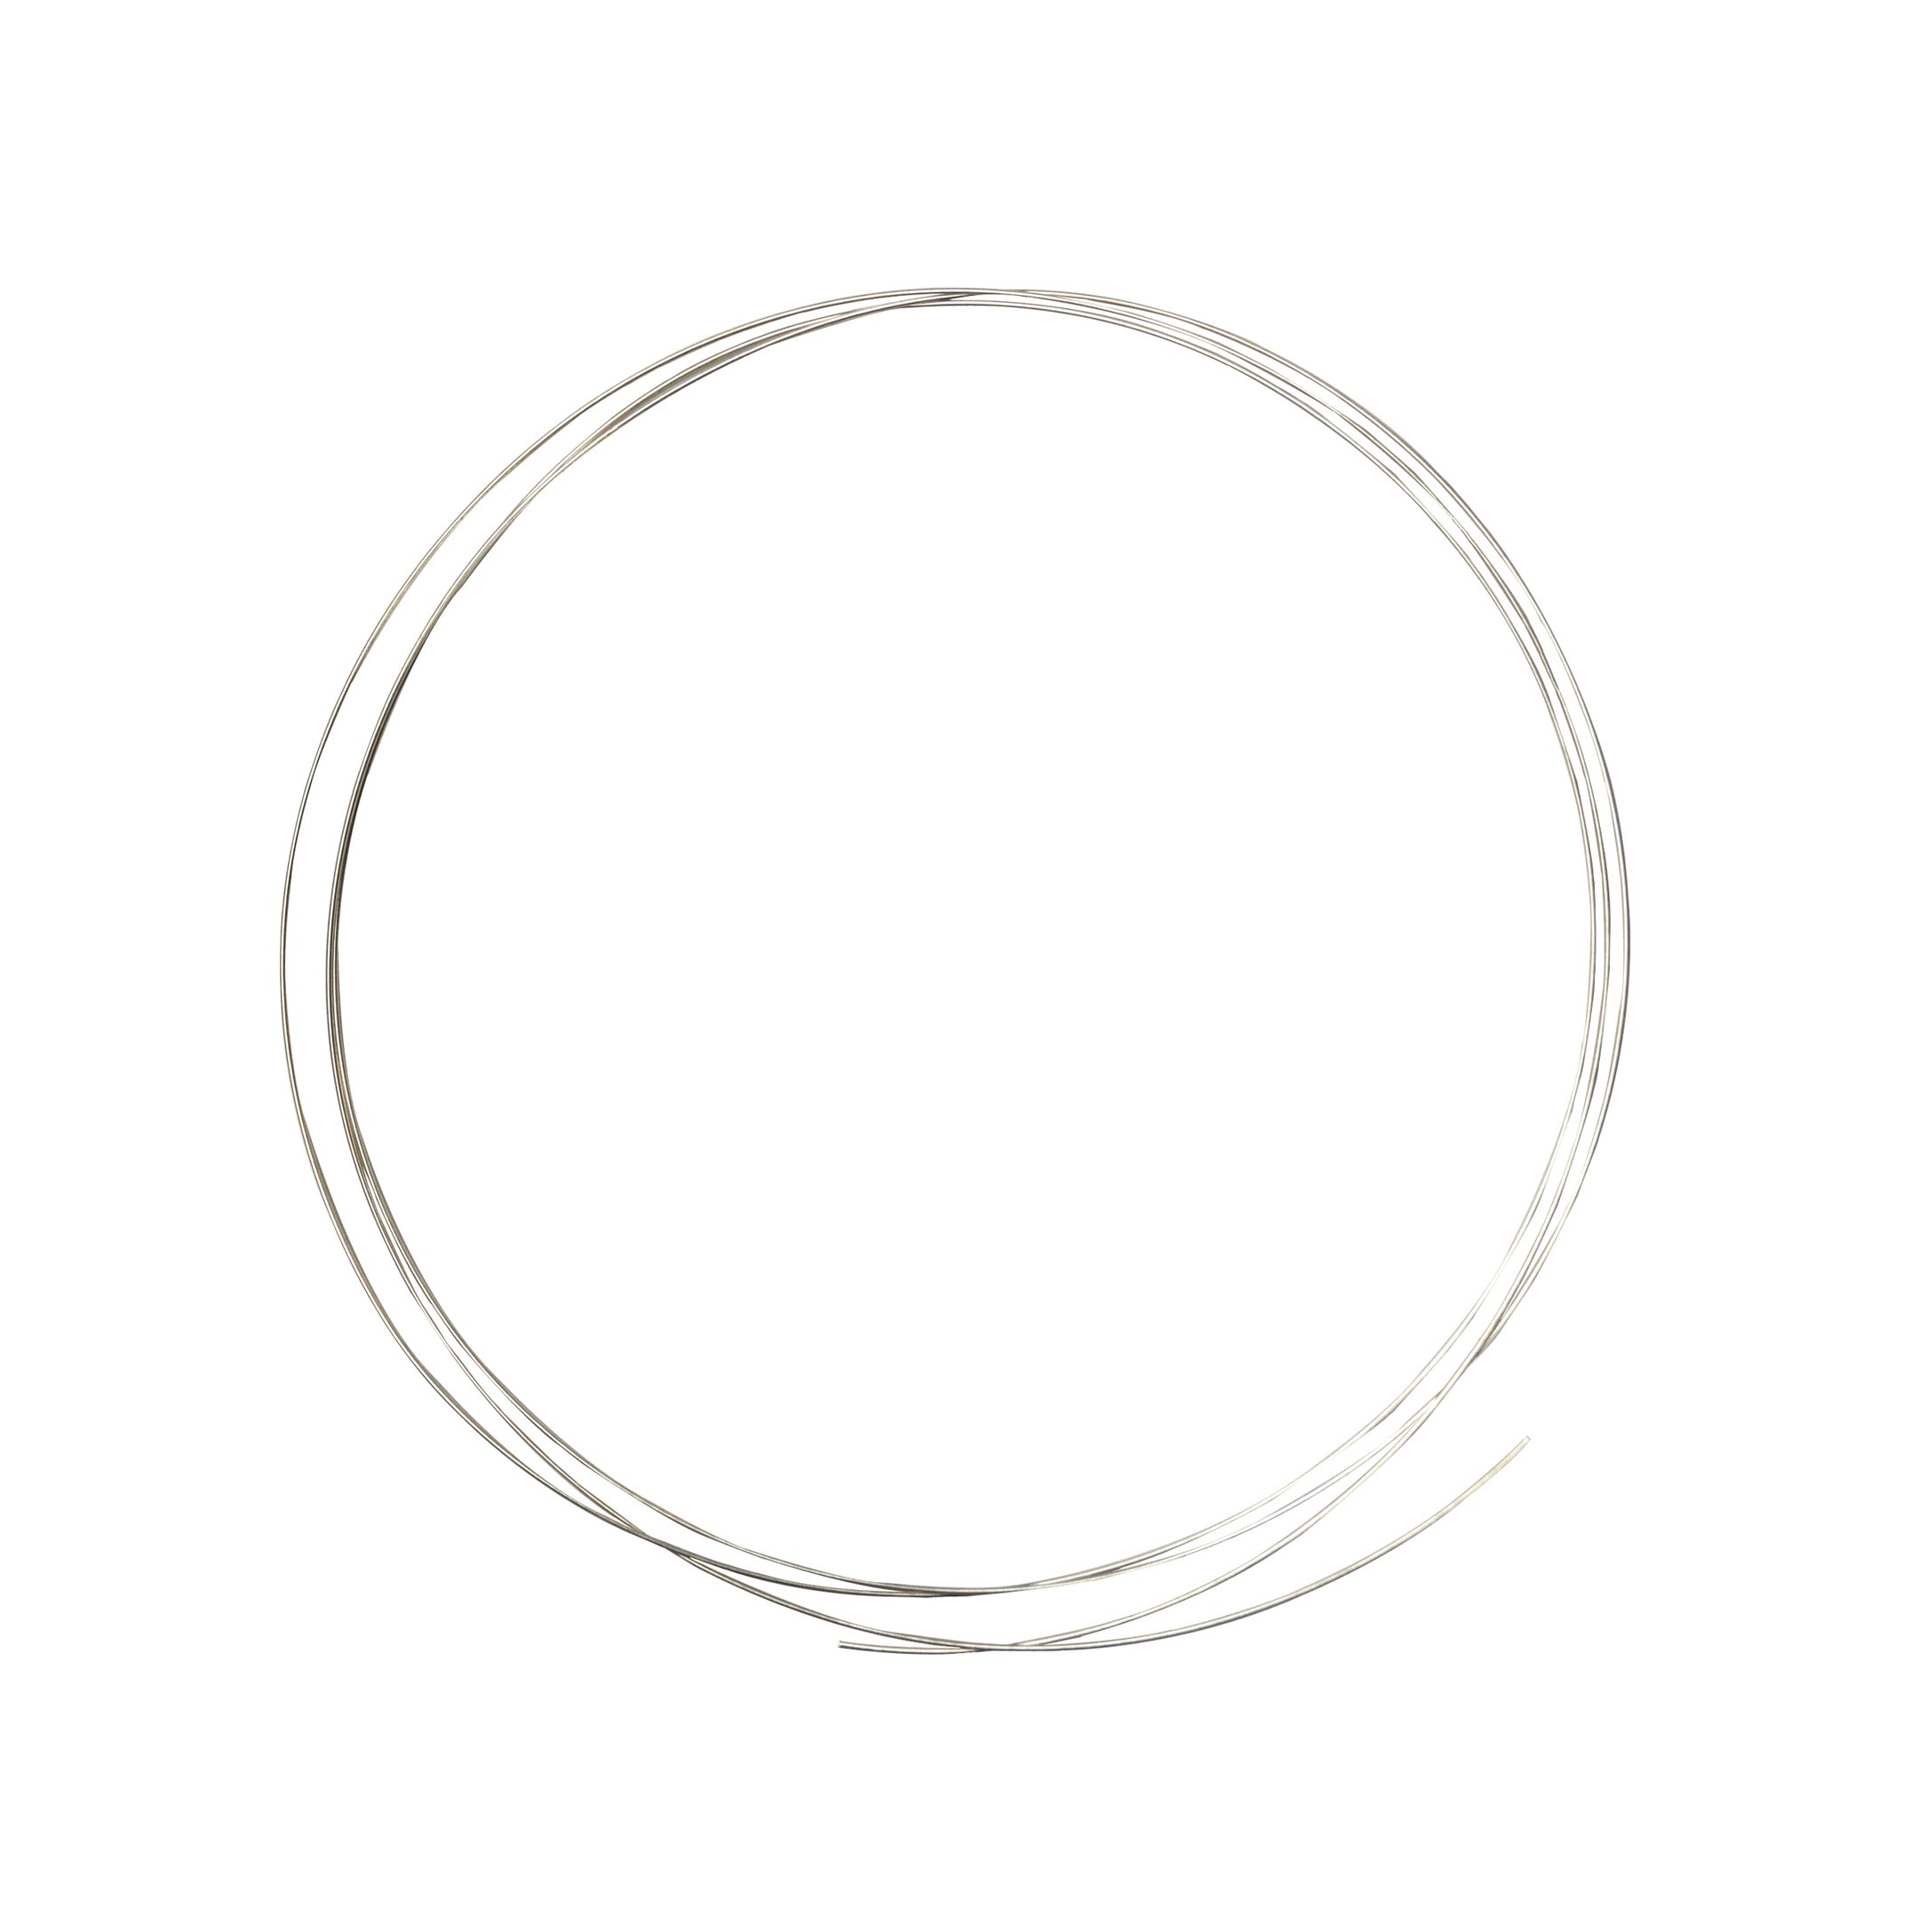 5 Feet Soft SS65 1/4 T. oz Silver Solder Wire Tool for Jewelry Making and Repair